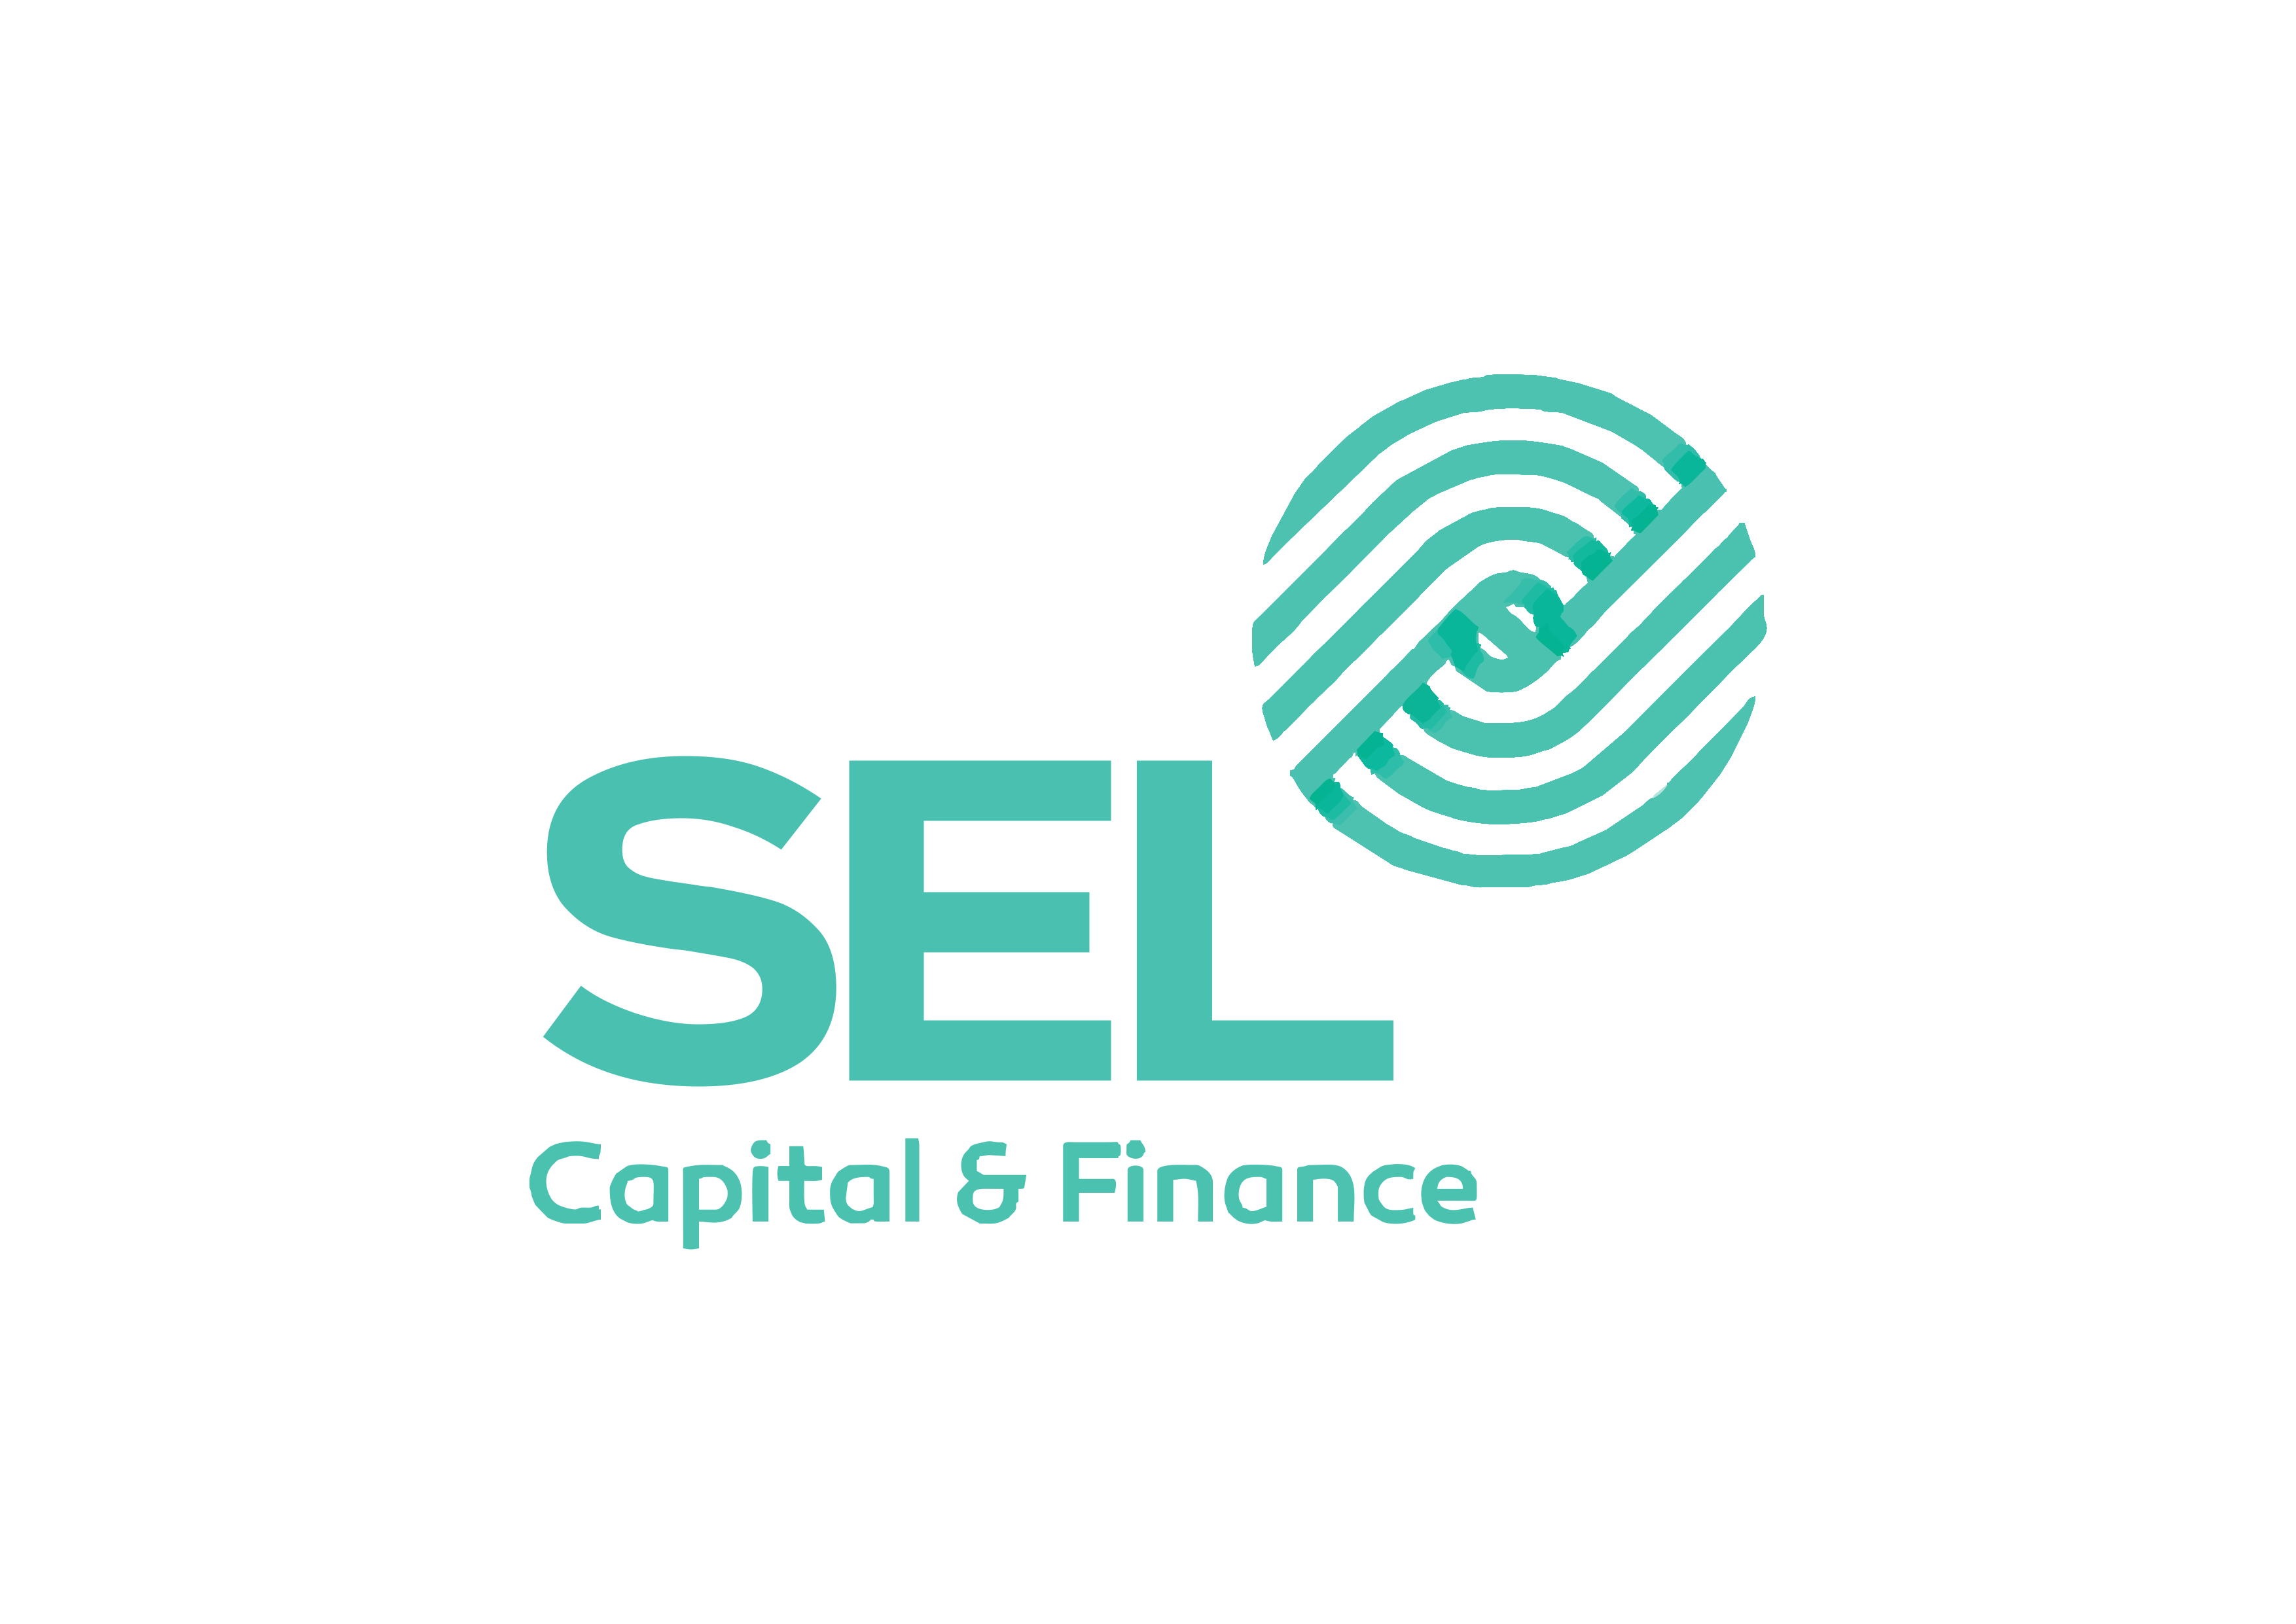 StillEarth Capital and finance